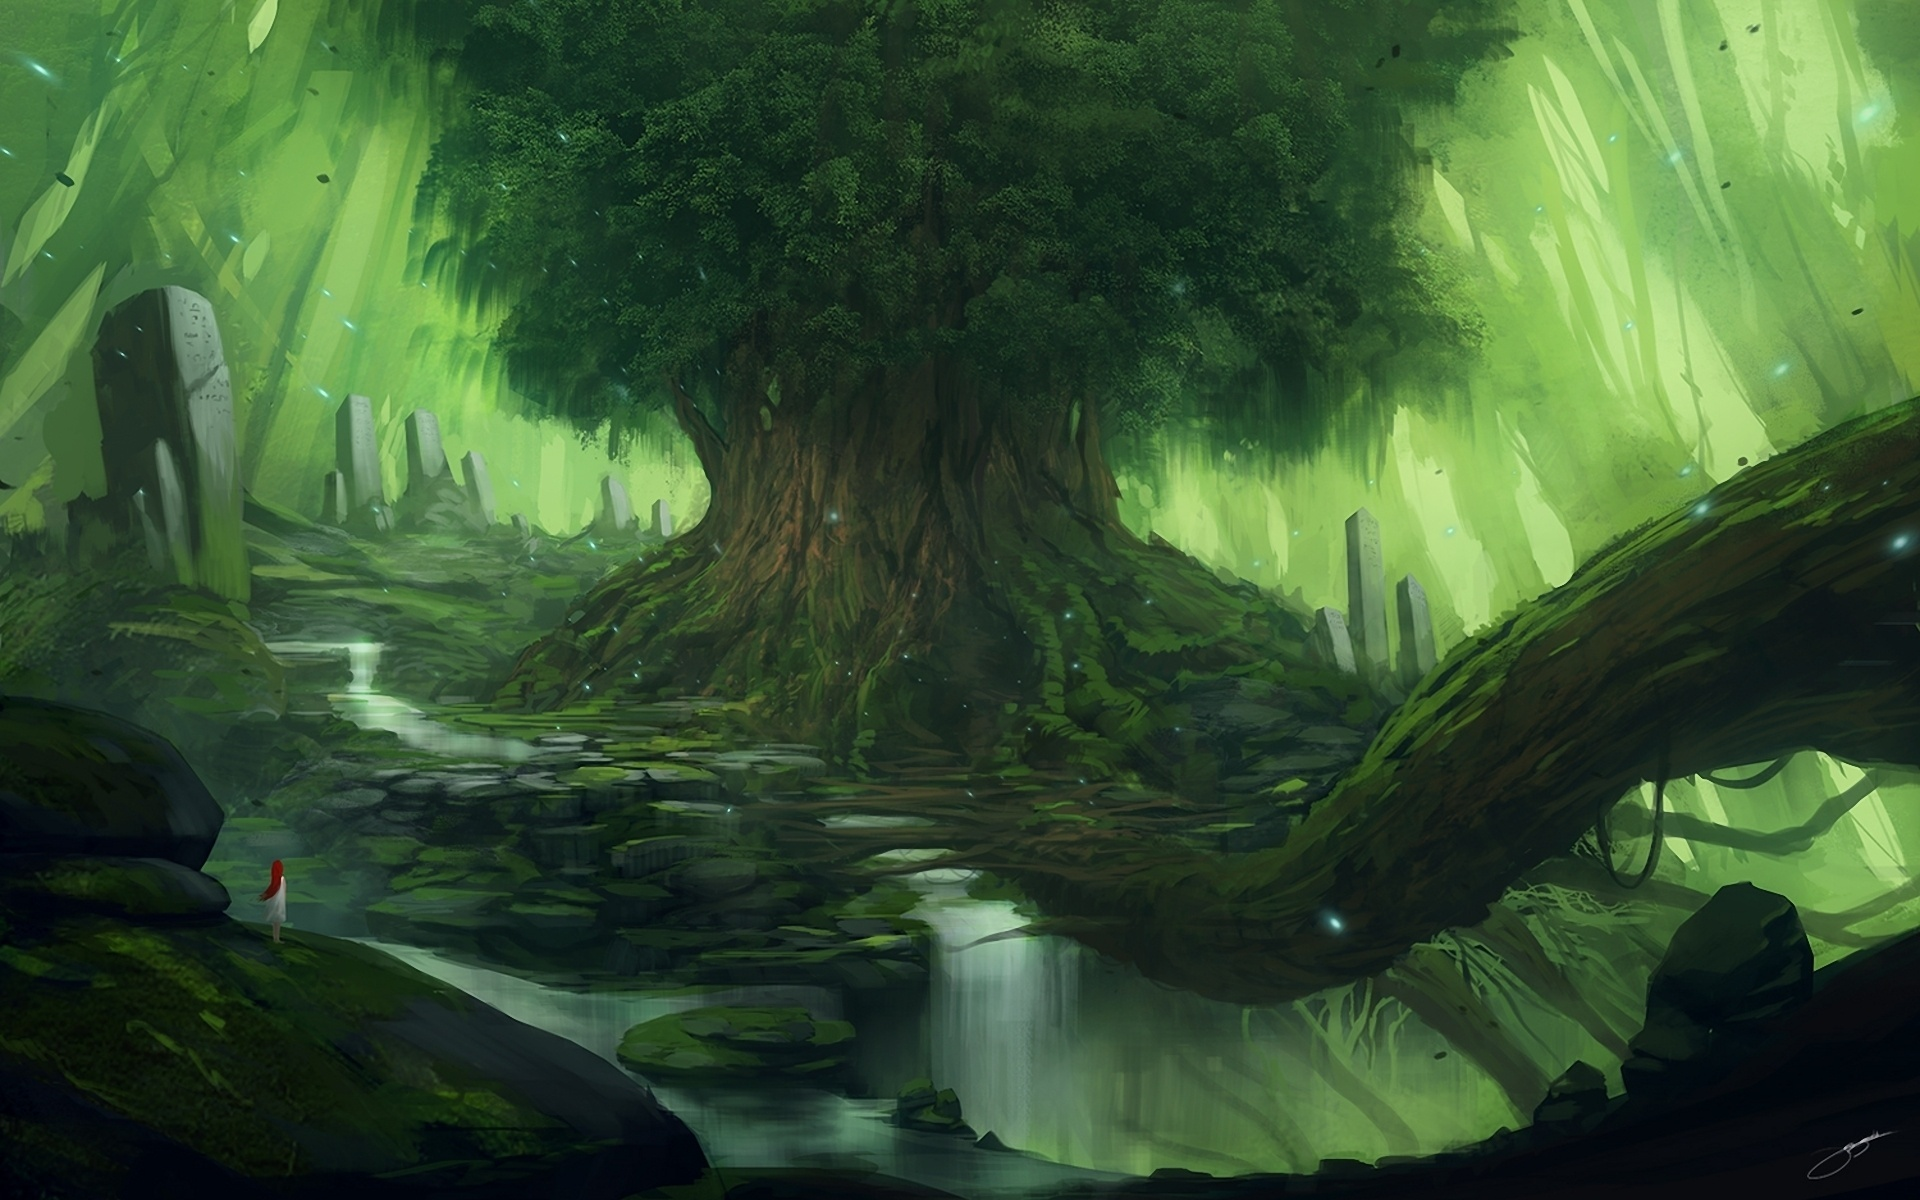 Animated Girly Wallpapers Green Fantasy Tree Girl Look Wallpapers Green Fantasy